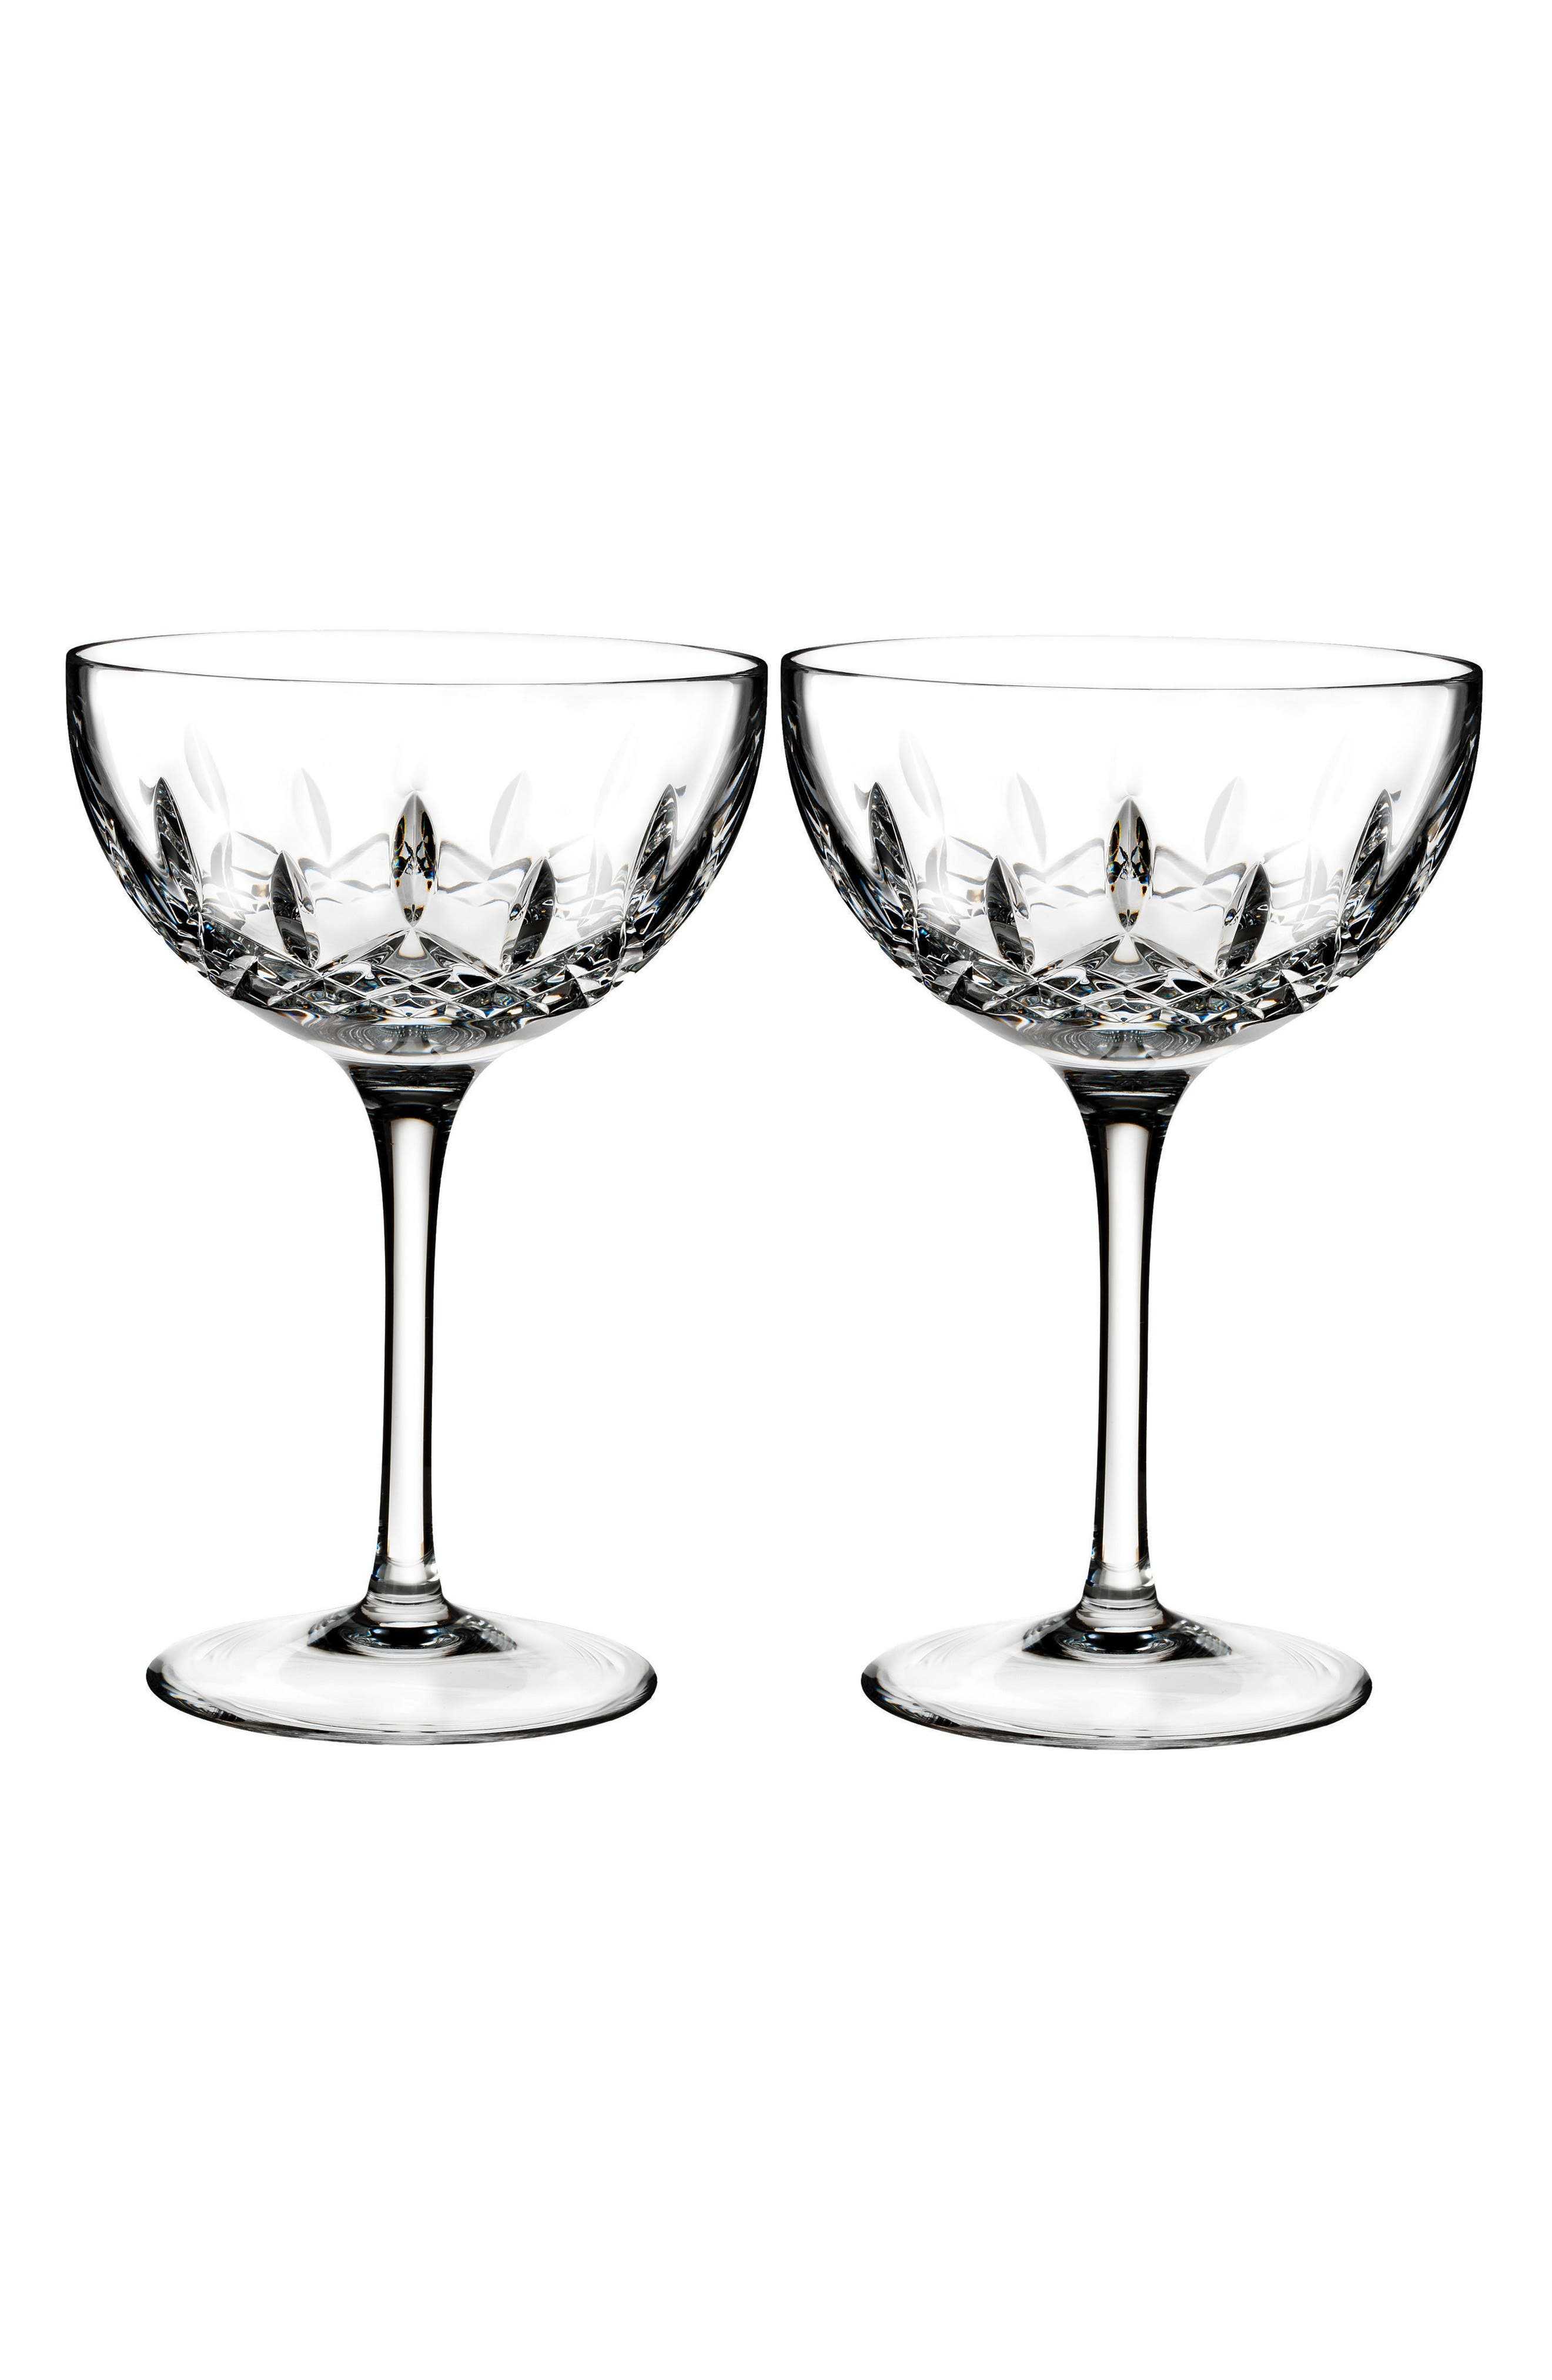 Alternate Image 1 Selected - Waterford Lismore Pops Set of 2 Lead Crystal Cocktail Glasses